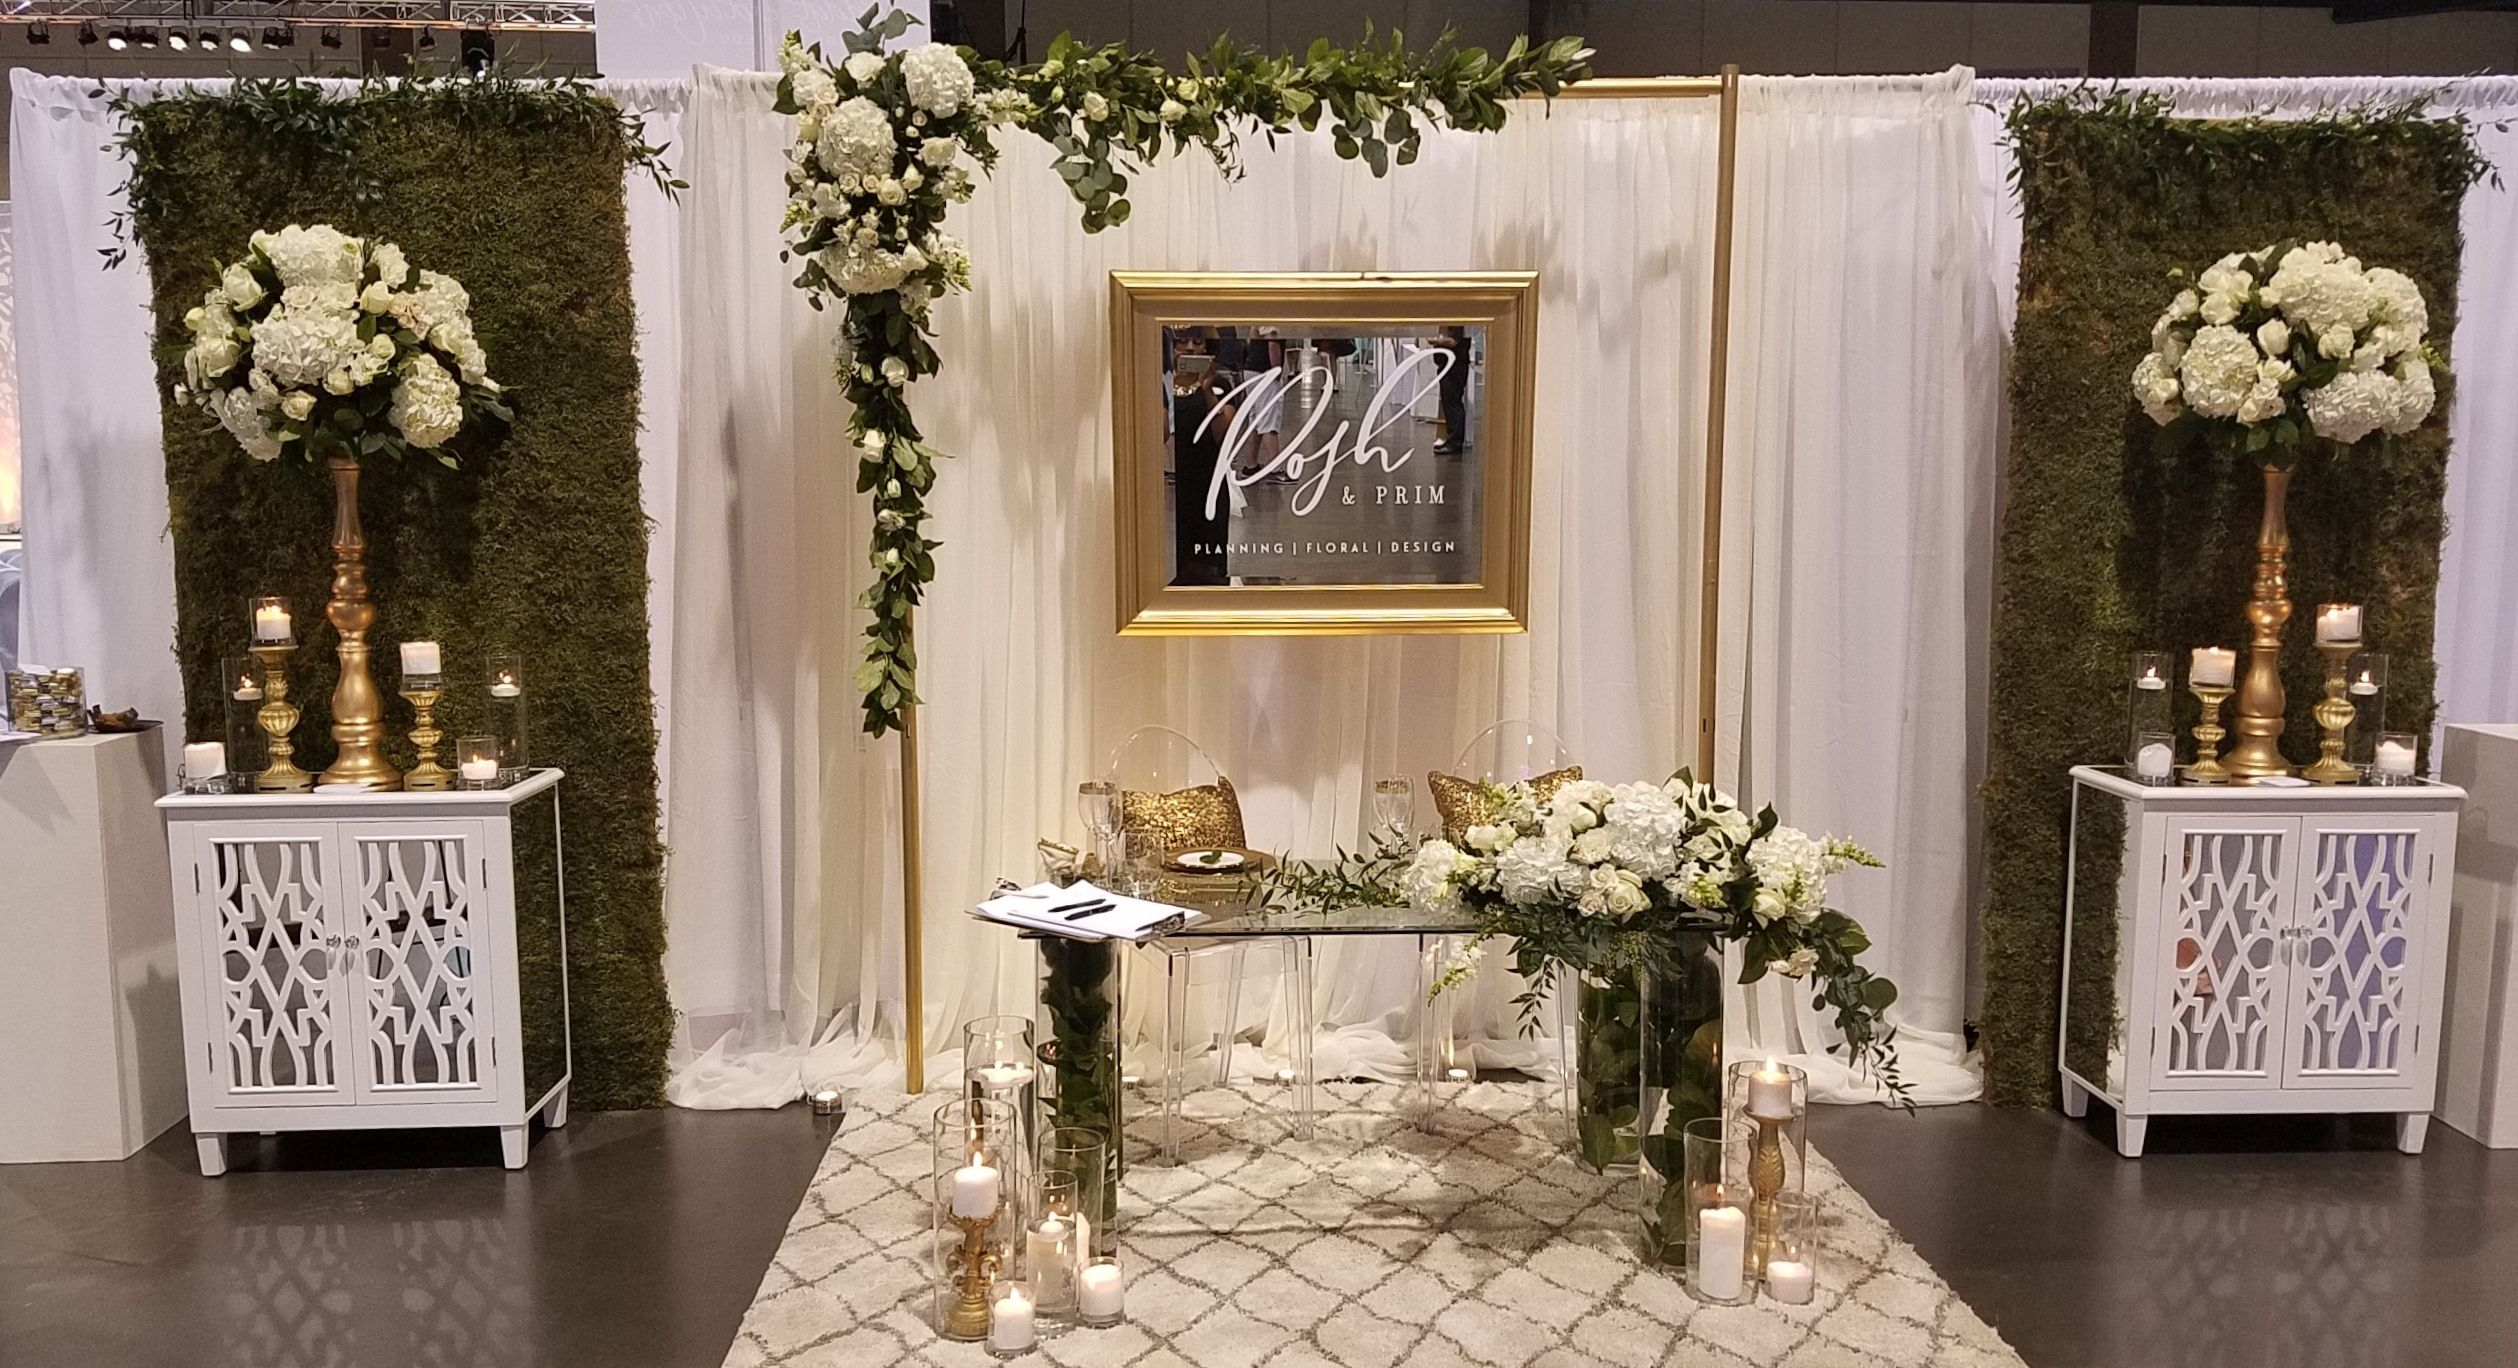 Wedding Exhibition Booth Design : Bridal show booth design october white with gold